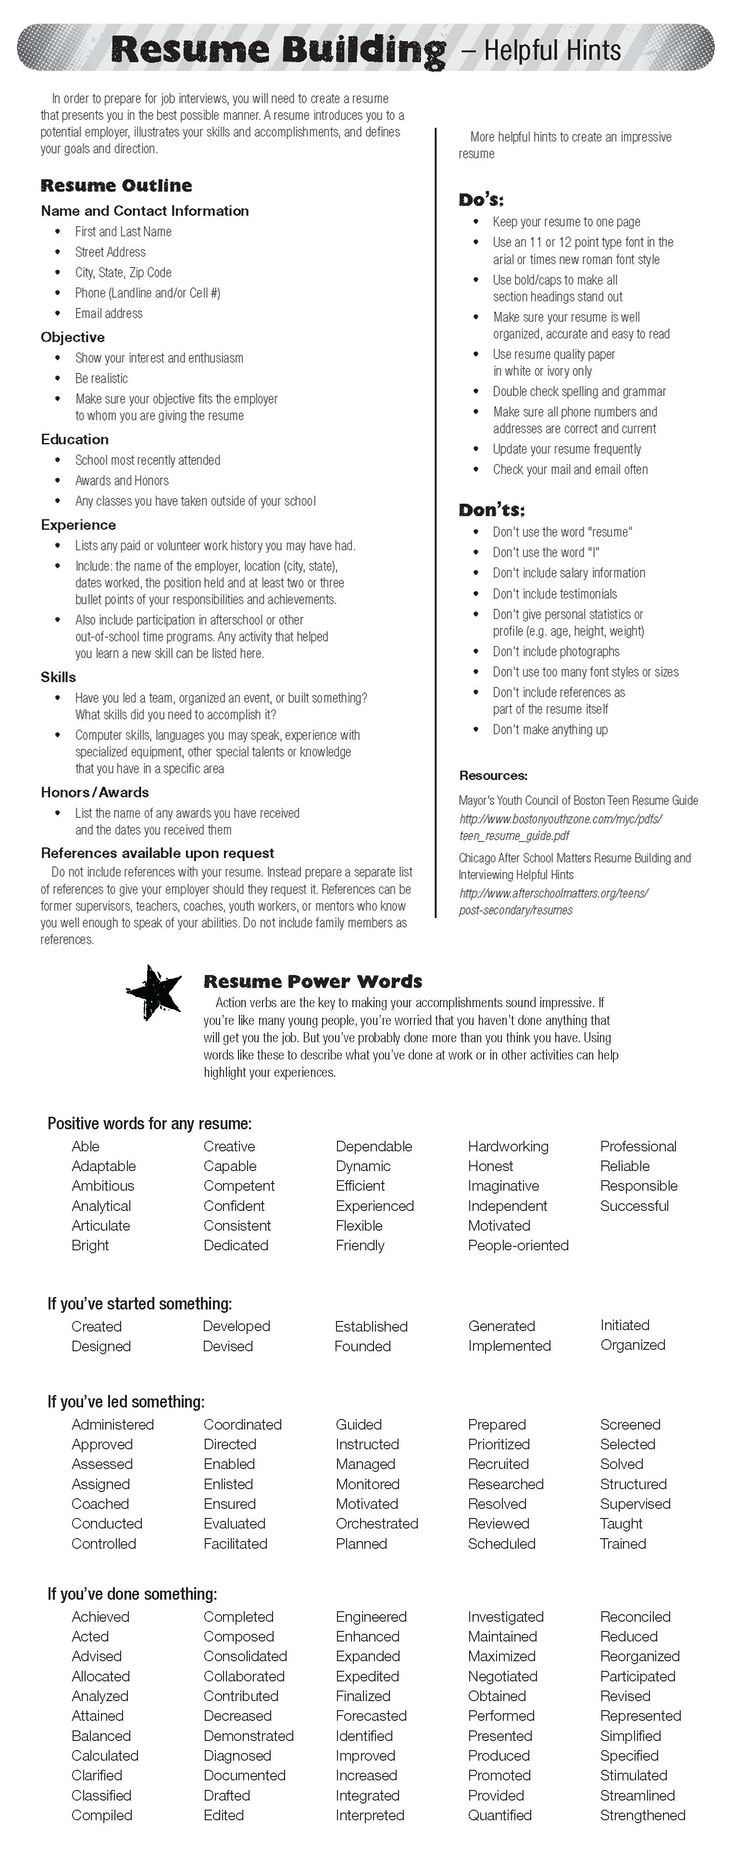 Opposenewapstandardsus  Outstanding  Ideas About Resume On Pinterest  Cv Format Resume Cv And  With Outstanding  Ideas About Resume On Pinterest  Cv Format Resume Cv And Resume Templates With Delectable Software Engineer Resume Template Also Make Me A Resume In Addition Sql Developer Resume And Sample Business Analyst Resume As Well As Resume Summary Section Additionally Format Of Resume From Pinterestcom With Opposenewapstandardsus  Outstanding  Ideas About Resume On Pinterest  Cv Format Resume Cv And  With Delectable  Ideas About Resume On Pinterest  Cv Format Resume Cv And Resume Templates And Outstanding Software Engineer Resume Template Also Make Me A Resume In Addition Sql Developer Resume From Pinterestcom